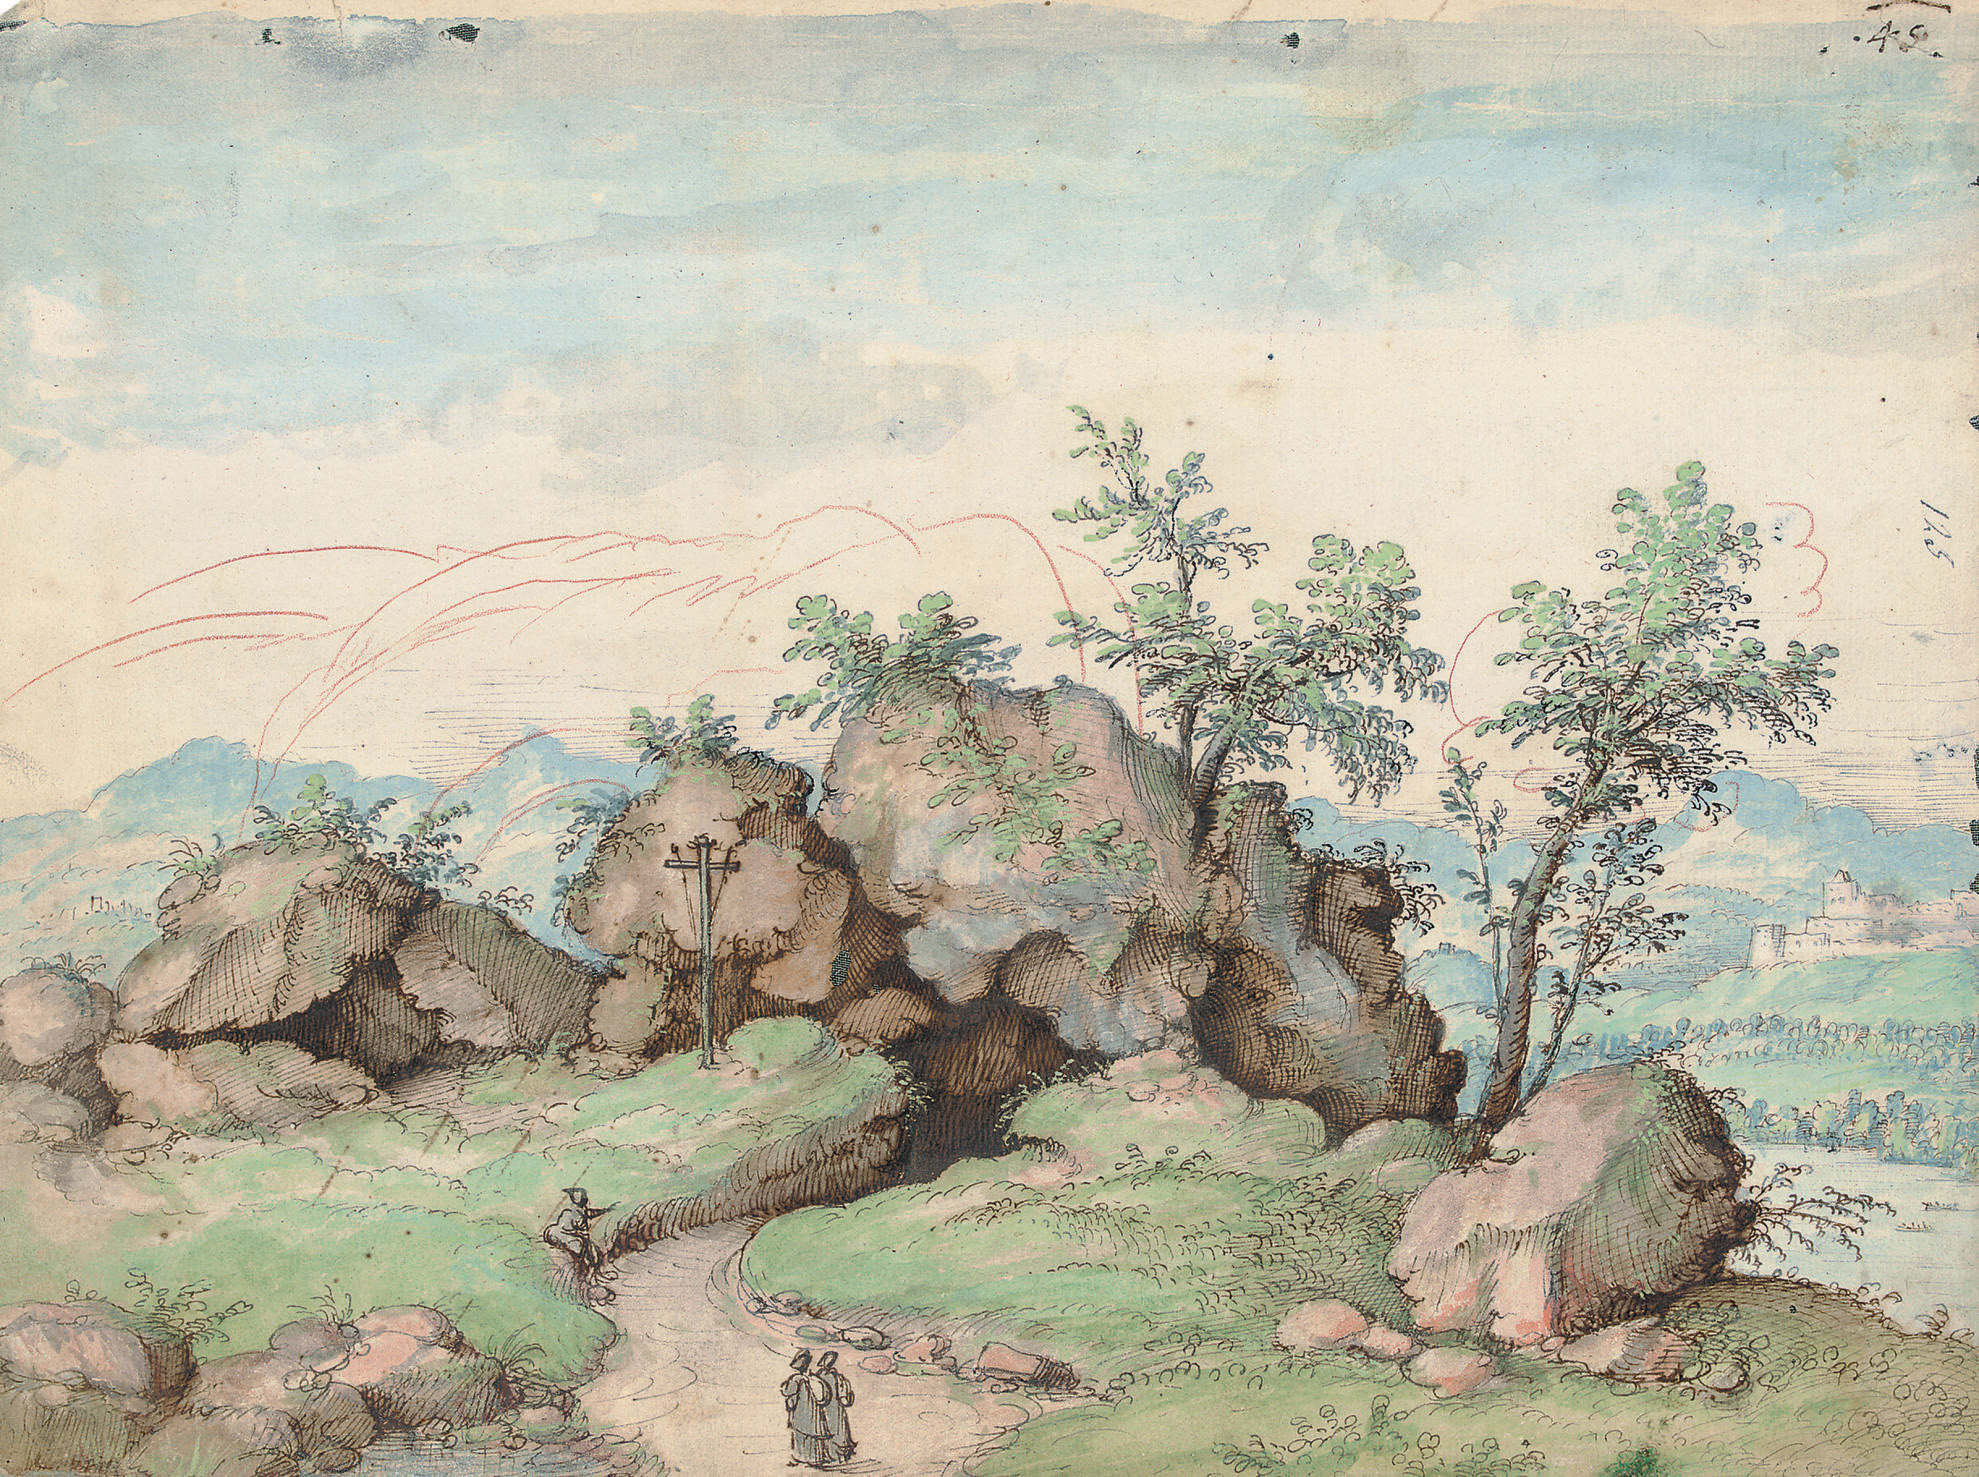 Travellers approaching a rock formation, a mountainous river landscape beyond